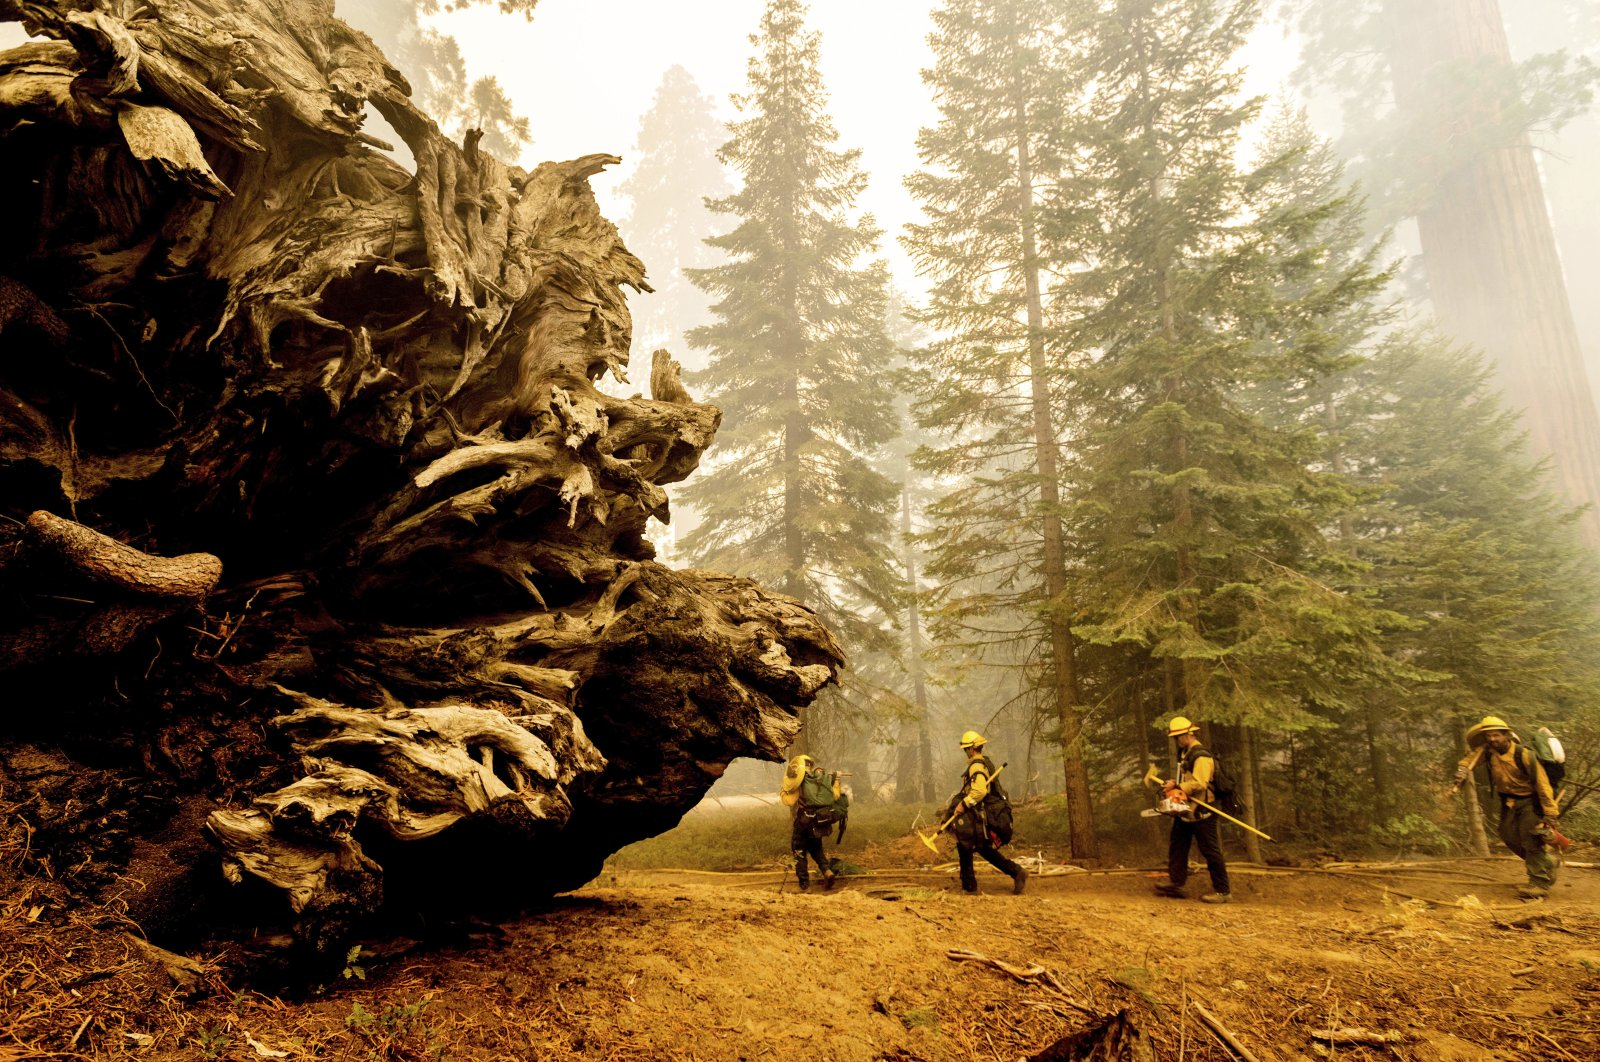 Firefighters battle the Windy Fire as it burns in the Trail of 100 Giants grove of Sequoia National Forest, California, U.S., Sept. 19, 2021. (AP Photo)